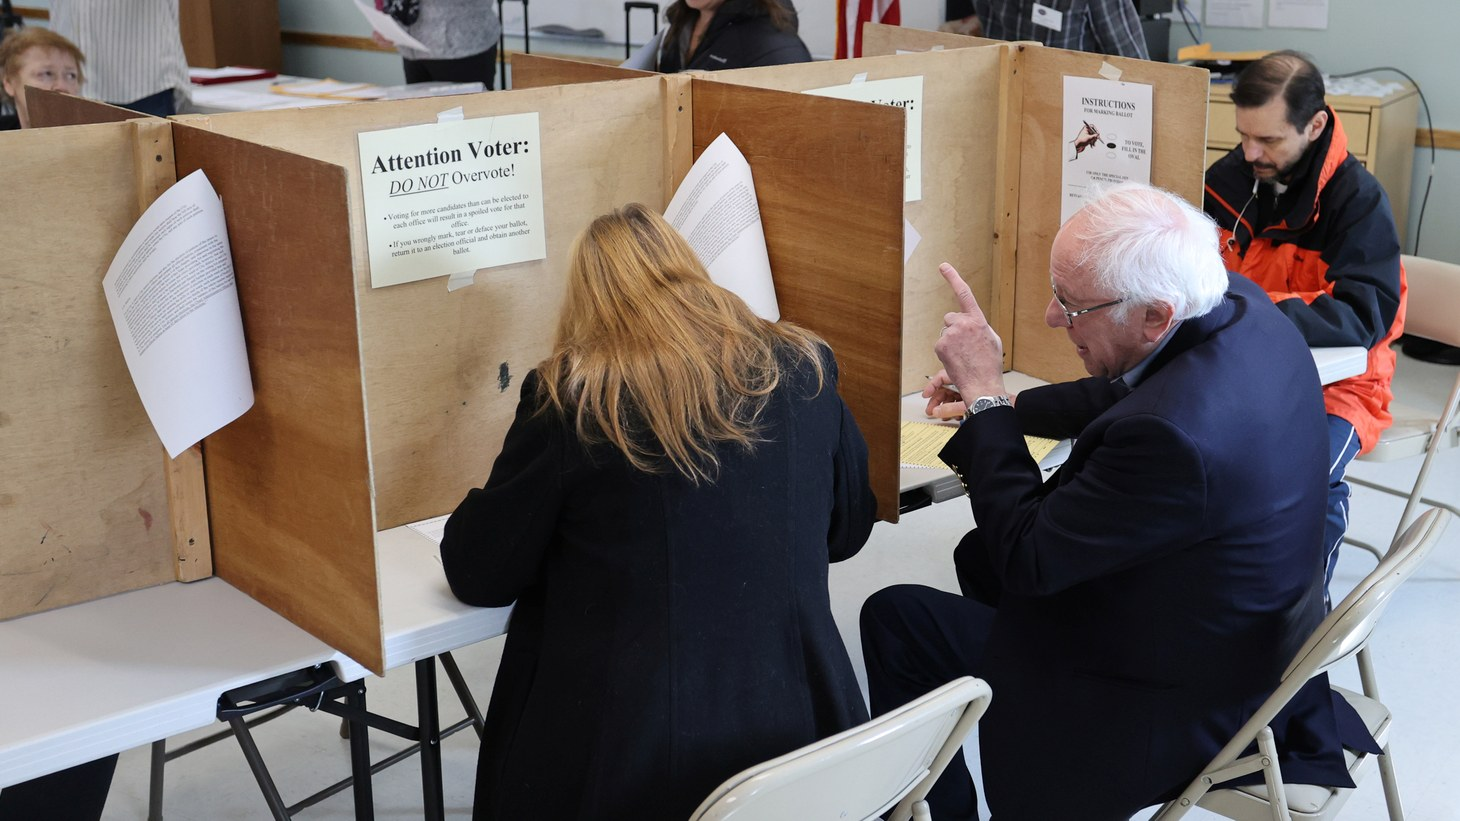 Democratic 2020 U.S. presidential candidate Senator Bernie Sanders and his wife Jane O'Meara Sanders vote in the Vermont primary at their polling place in Burlington, Vermont, U.S. March 3, 2020.